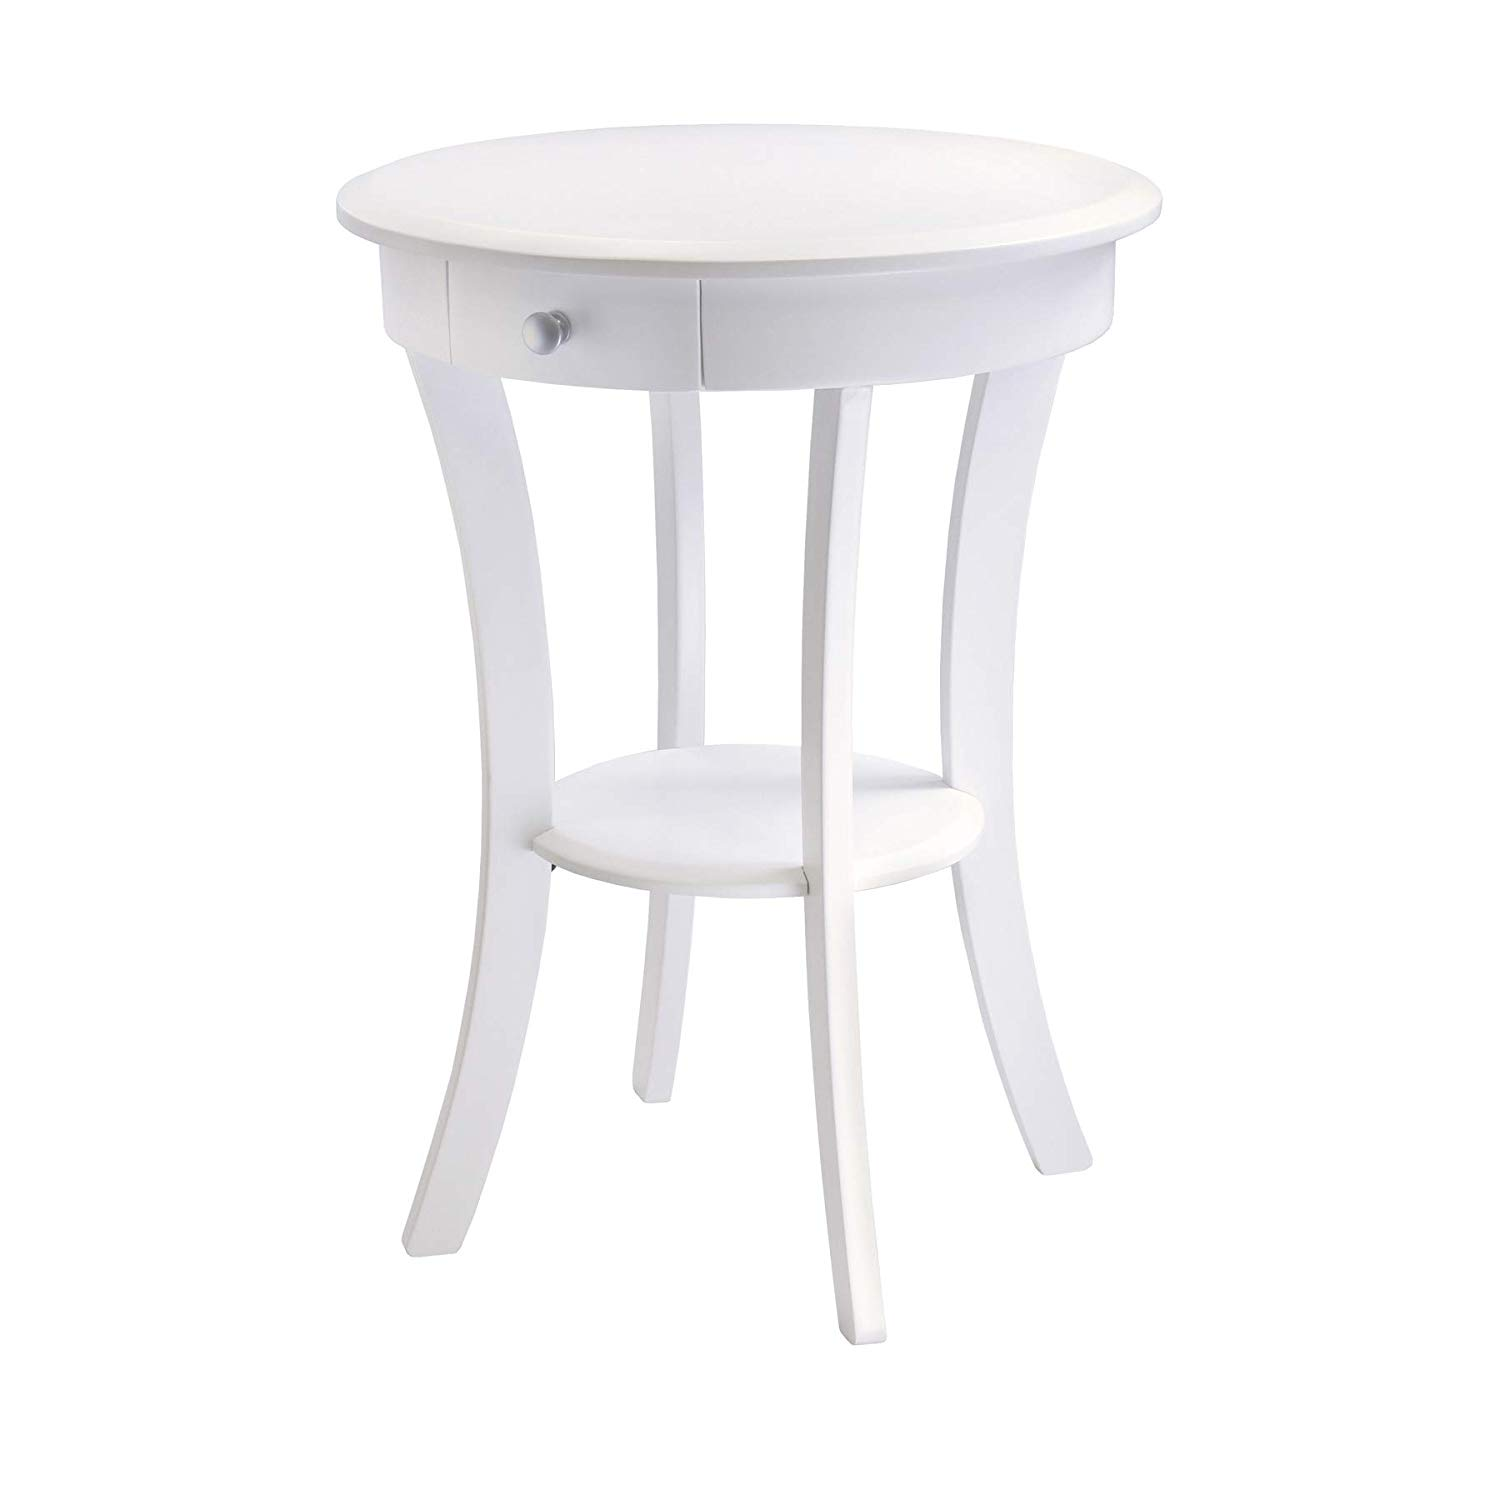 winsome wood sasha accent table white kitchen ugjsbl pottery barn flower dining clip desk lamp mid century furniture unfinished pine counter height extendable baroque cordless